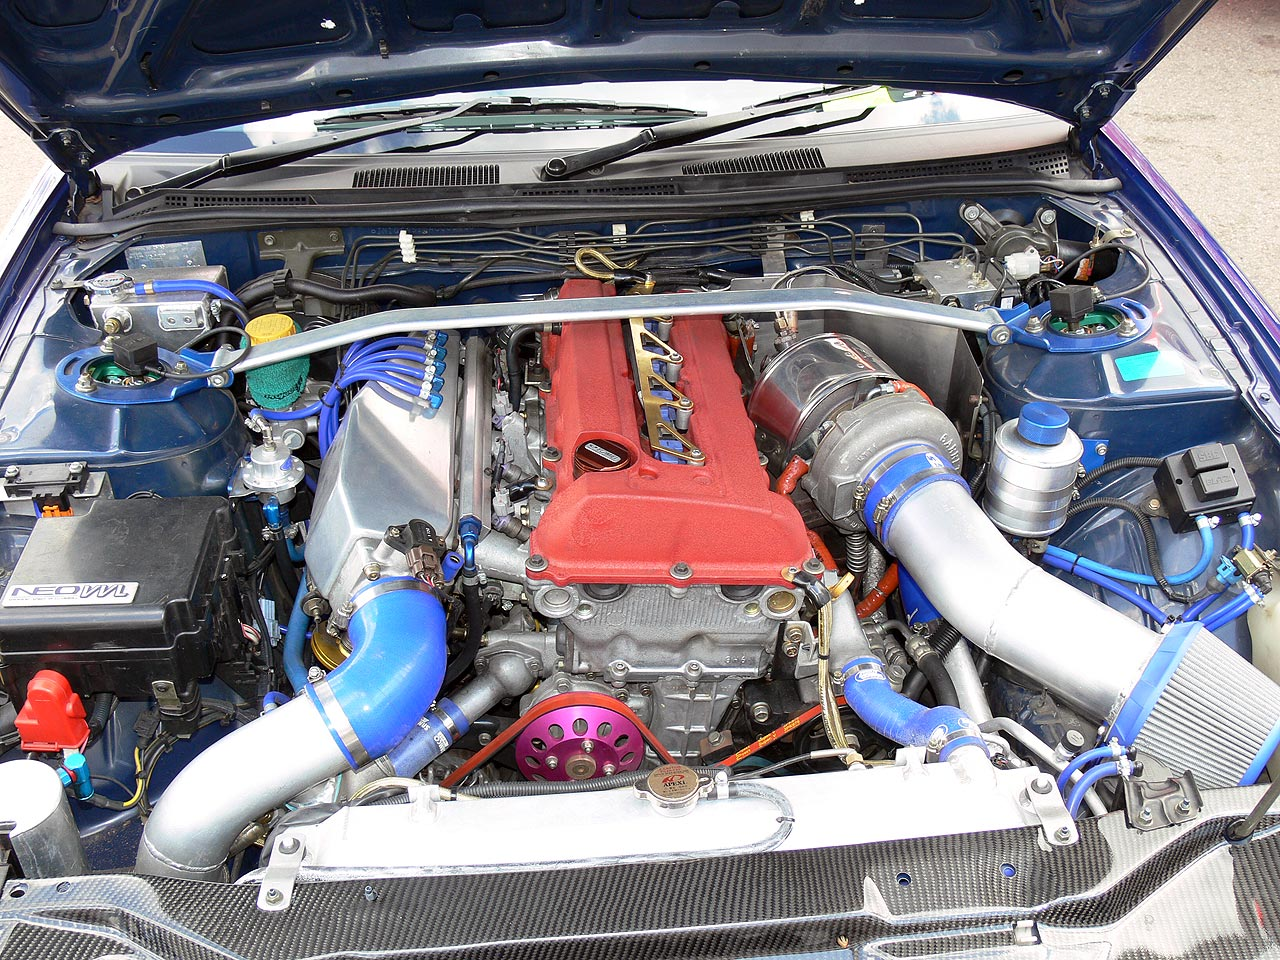 Nissan SR20 Engine with VET Head Conversion